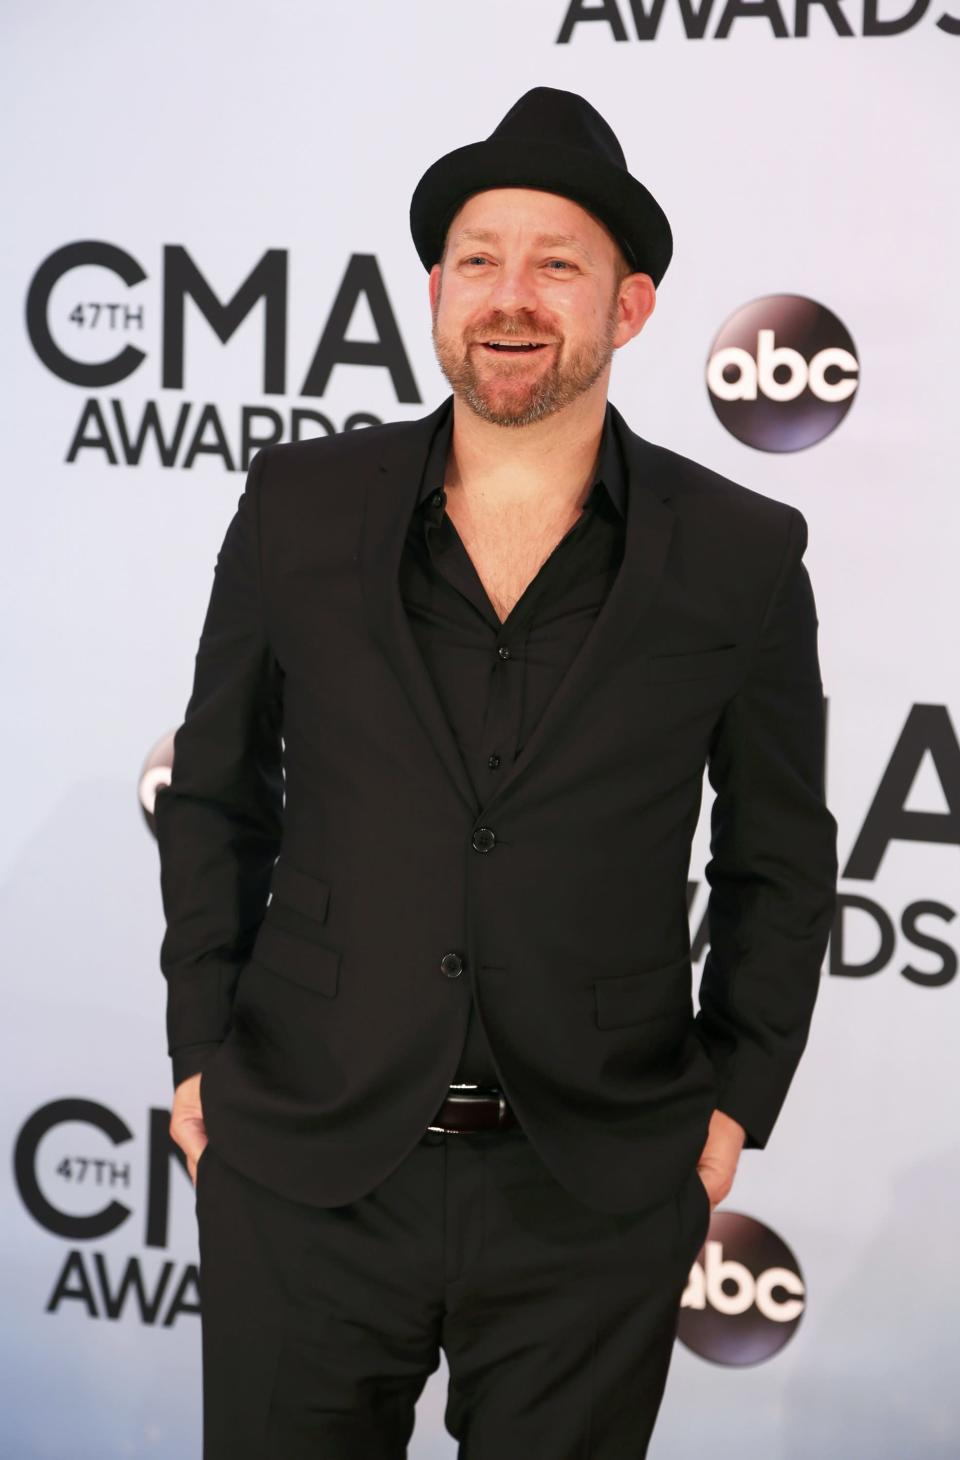 Singer Kristian Bush at the 47th Country Music Association Awards in Nashville, Tennessee November 6, 2013. REUTERS/Eric Henderson (UNITED STATES - Tags: ENTERTAINMENT)